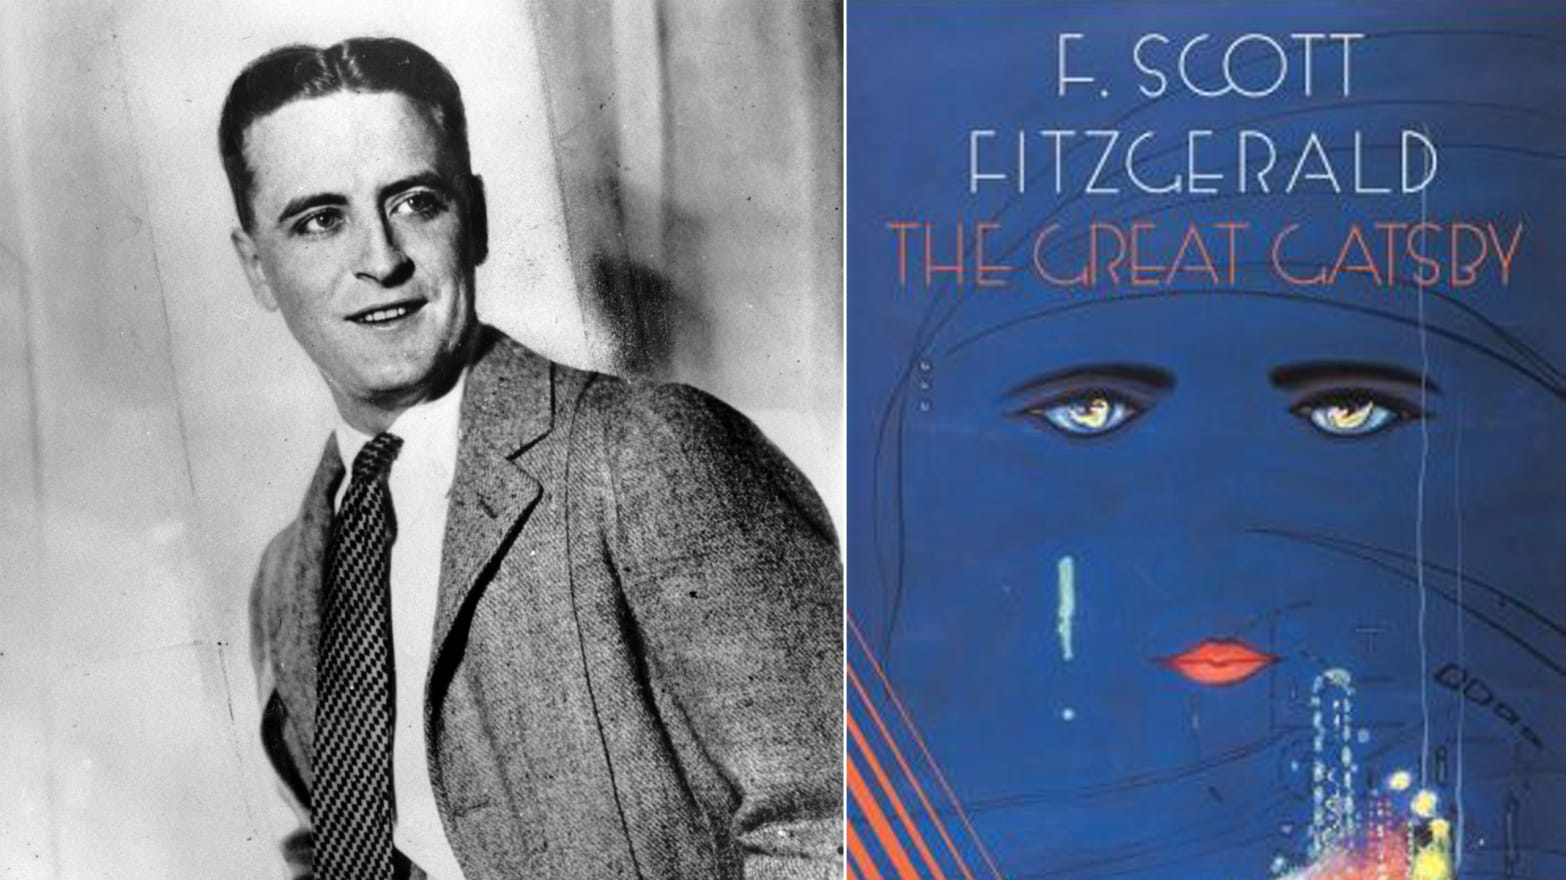 A comparison of the two scenes in the great gatsby a novel by f scott fitzgerald